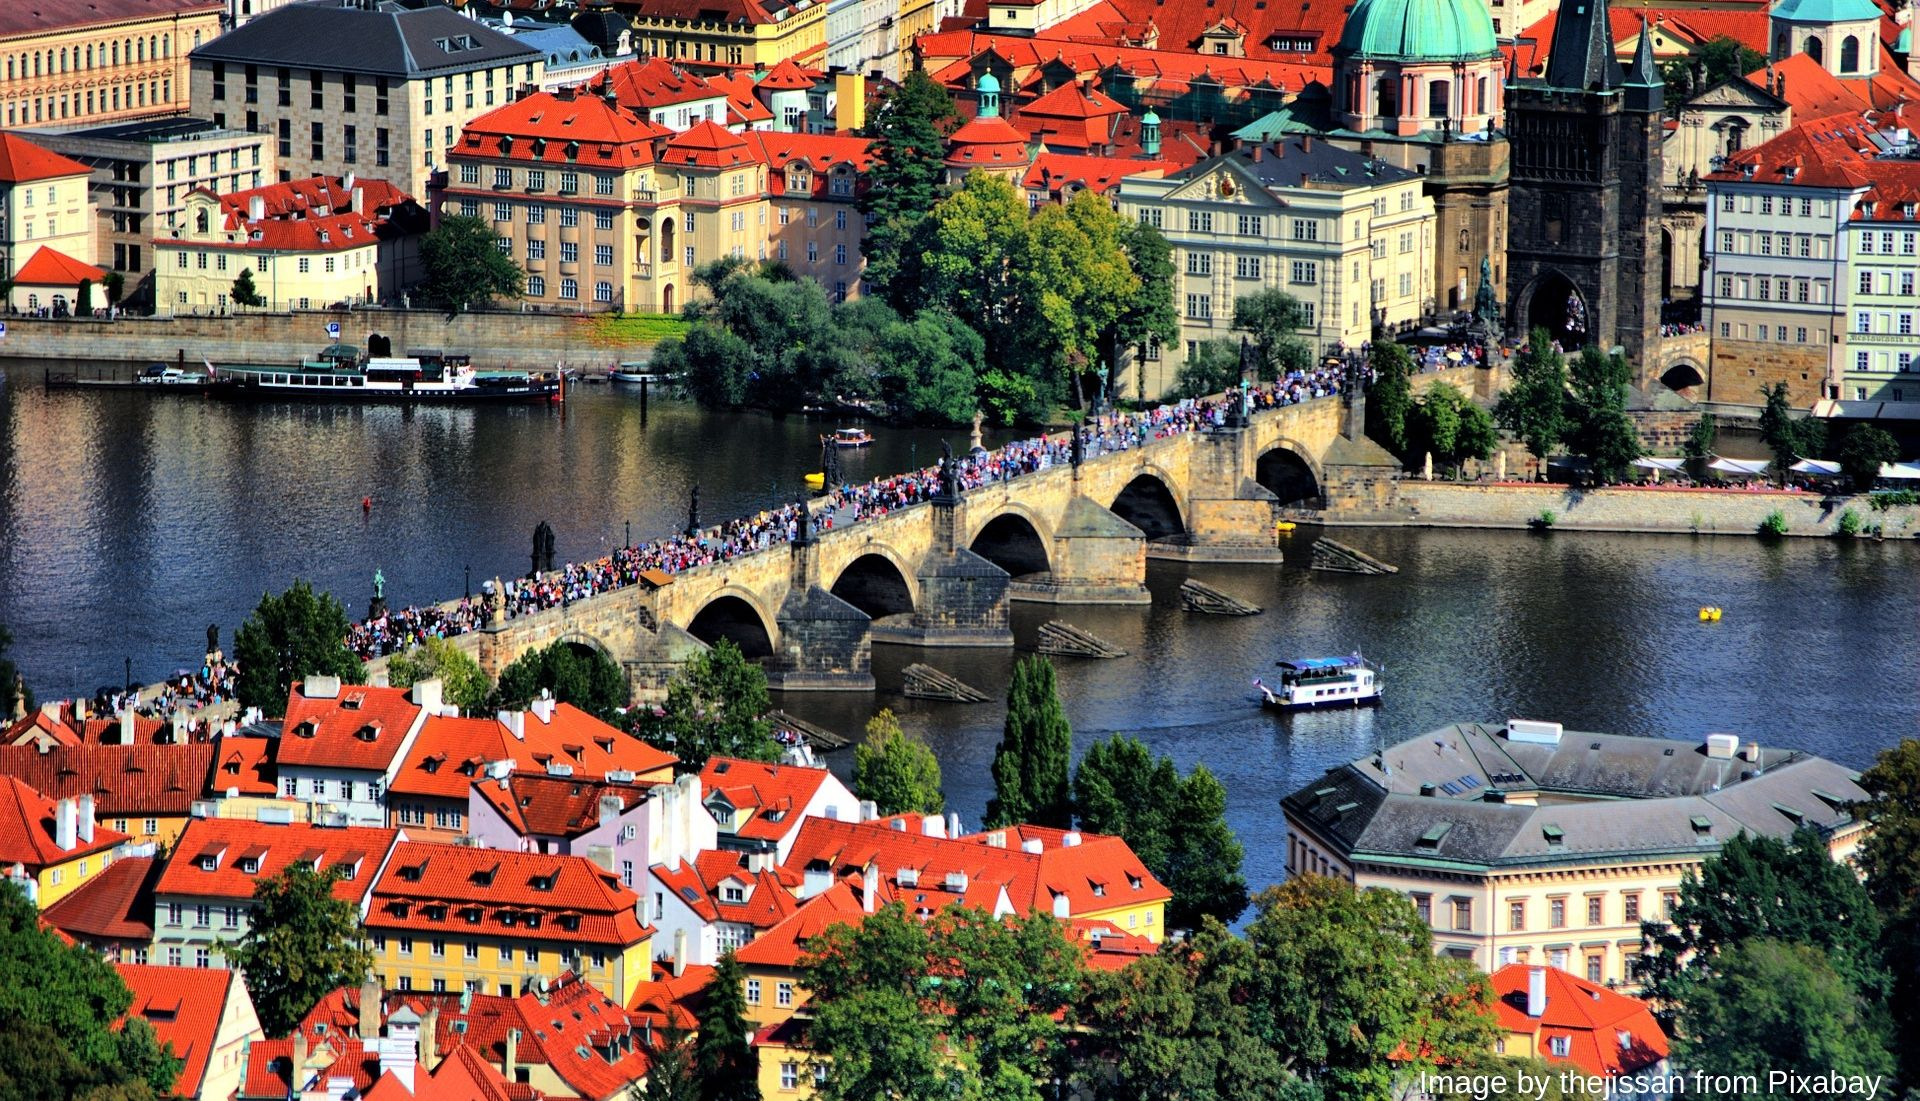 Busy Charles Bridge during the day